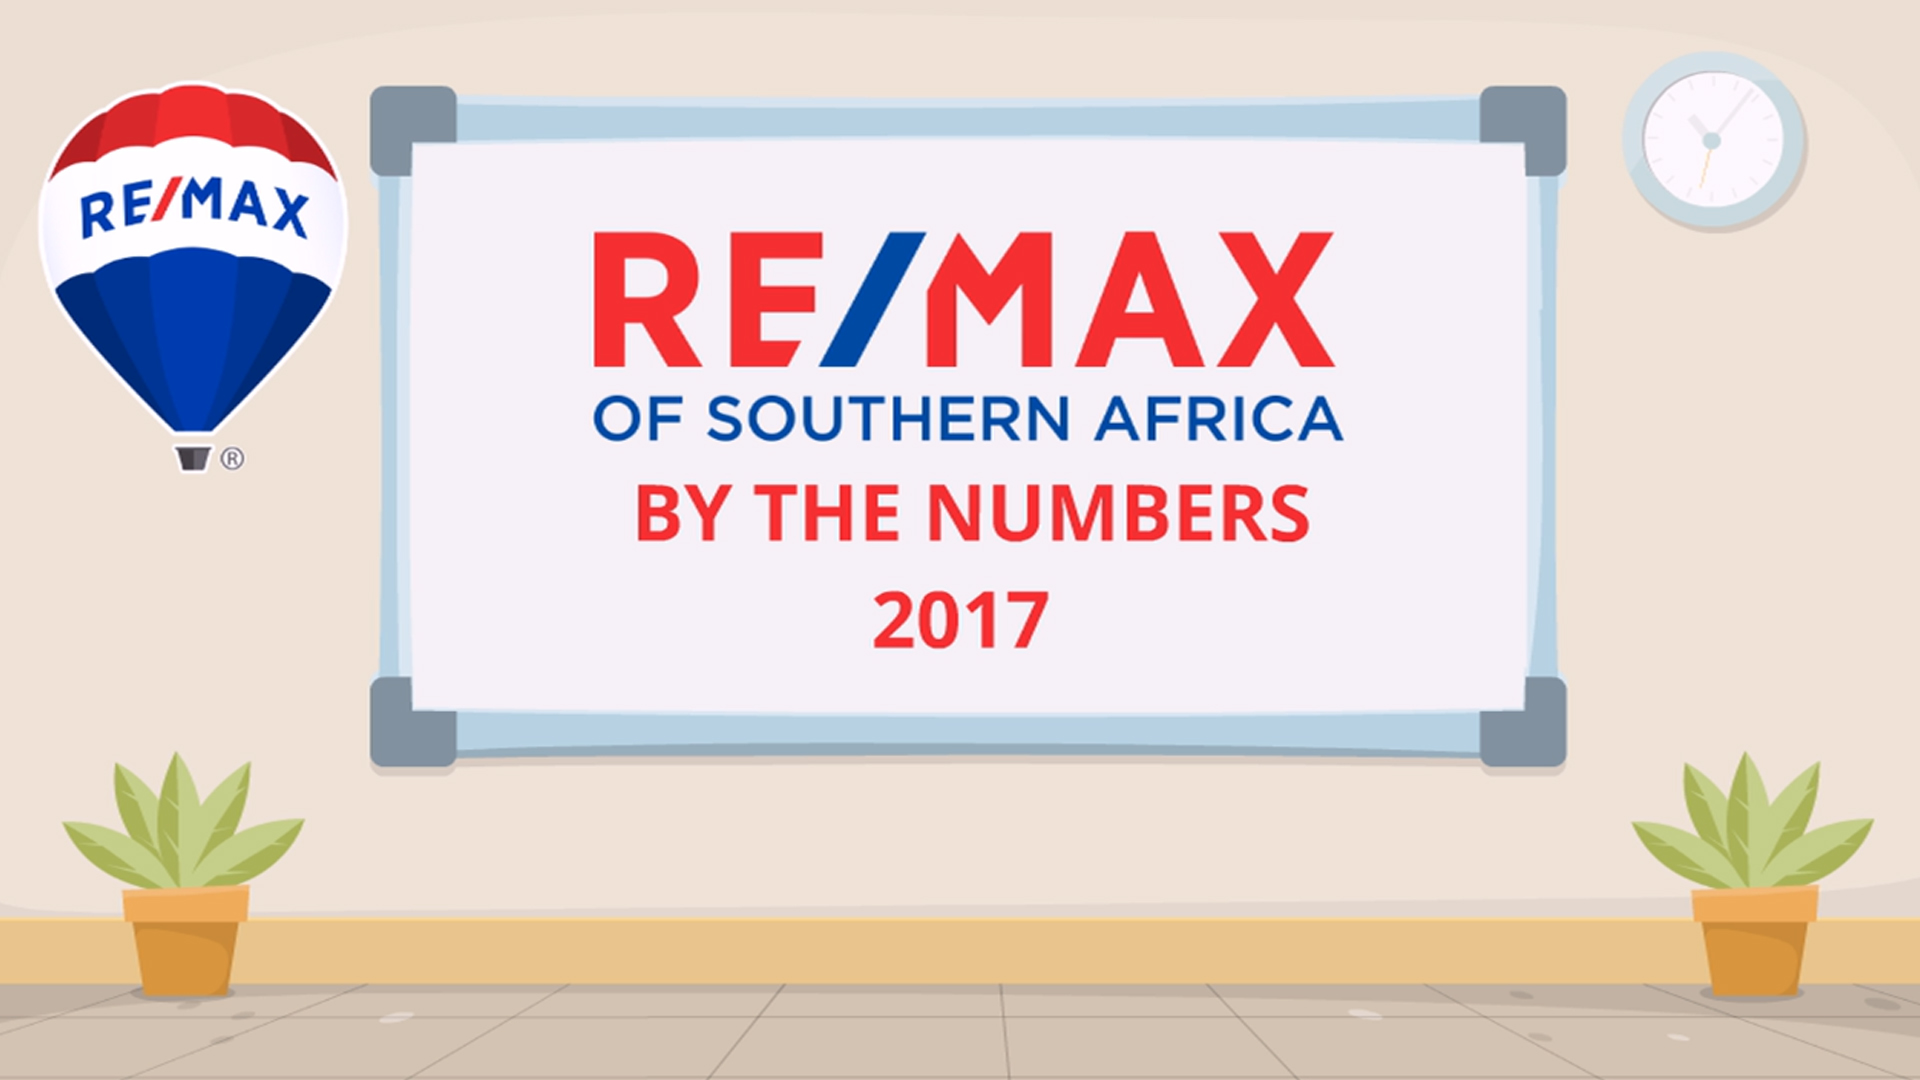 RE/MAX BY THE NUMBERS 2017